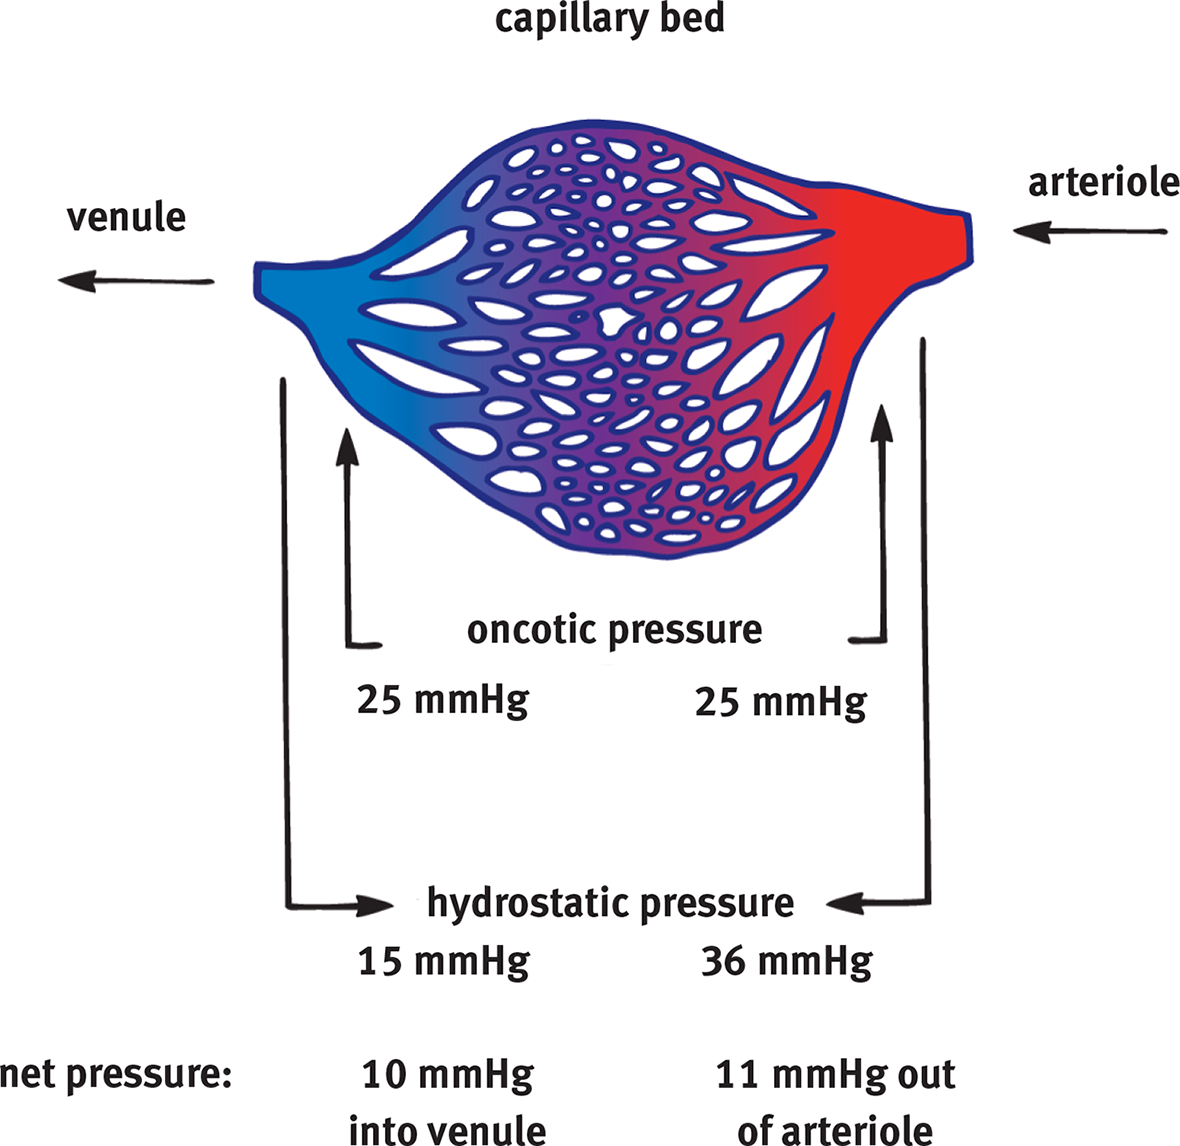 Image Of Capillary Bed Showing Oncotic Pressure Remains